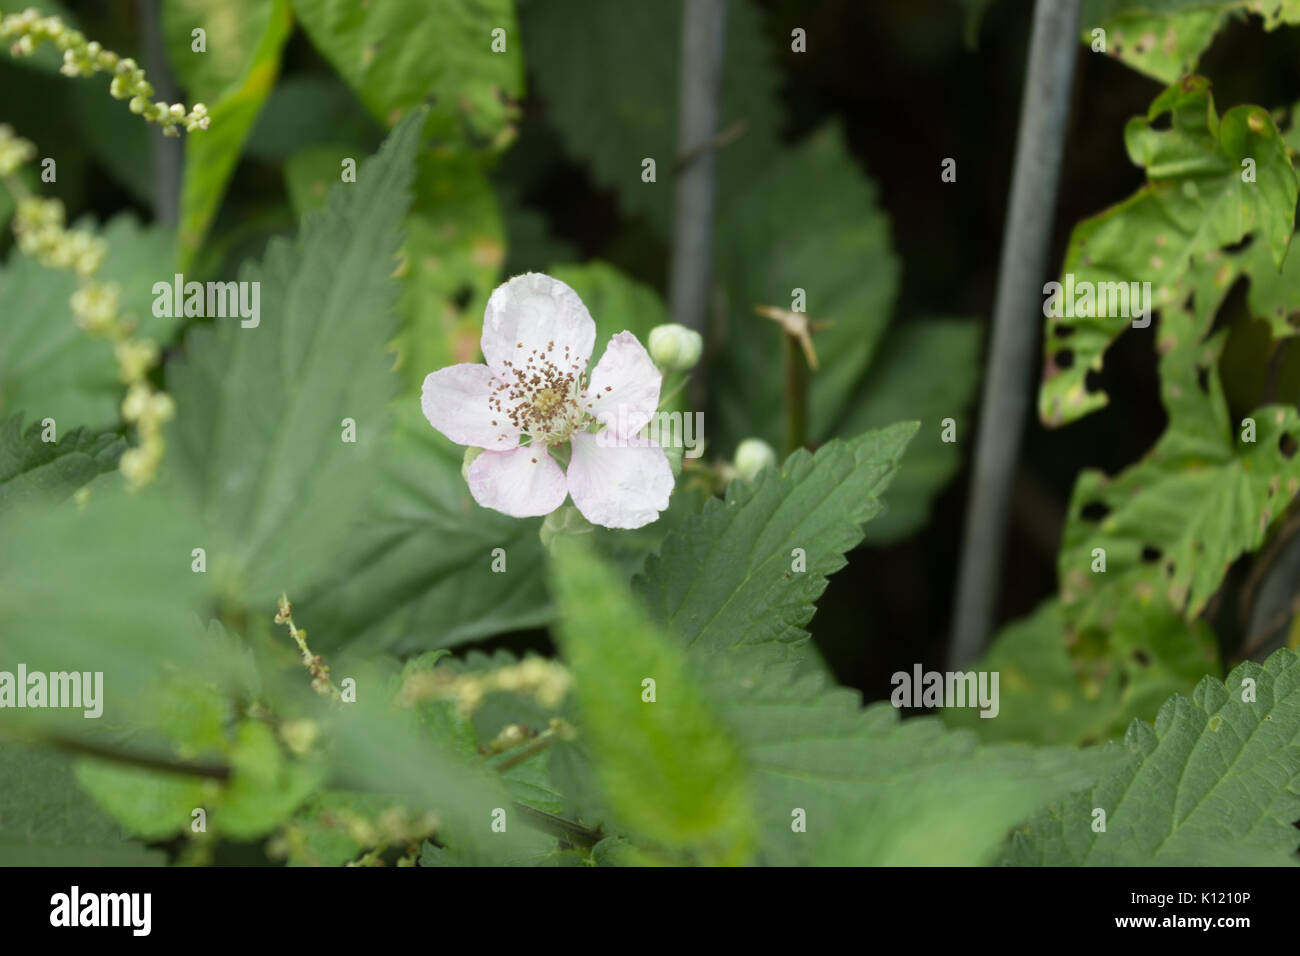 Amazing Blooming White Flowers Under The Evening Sunlight Five